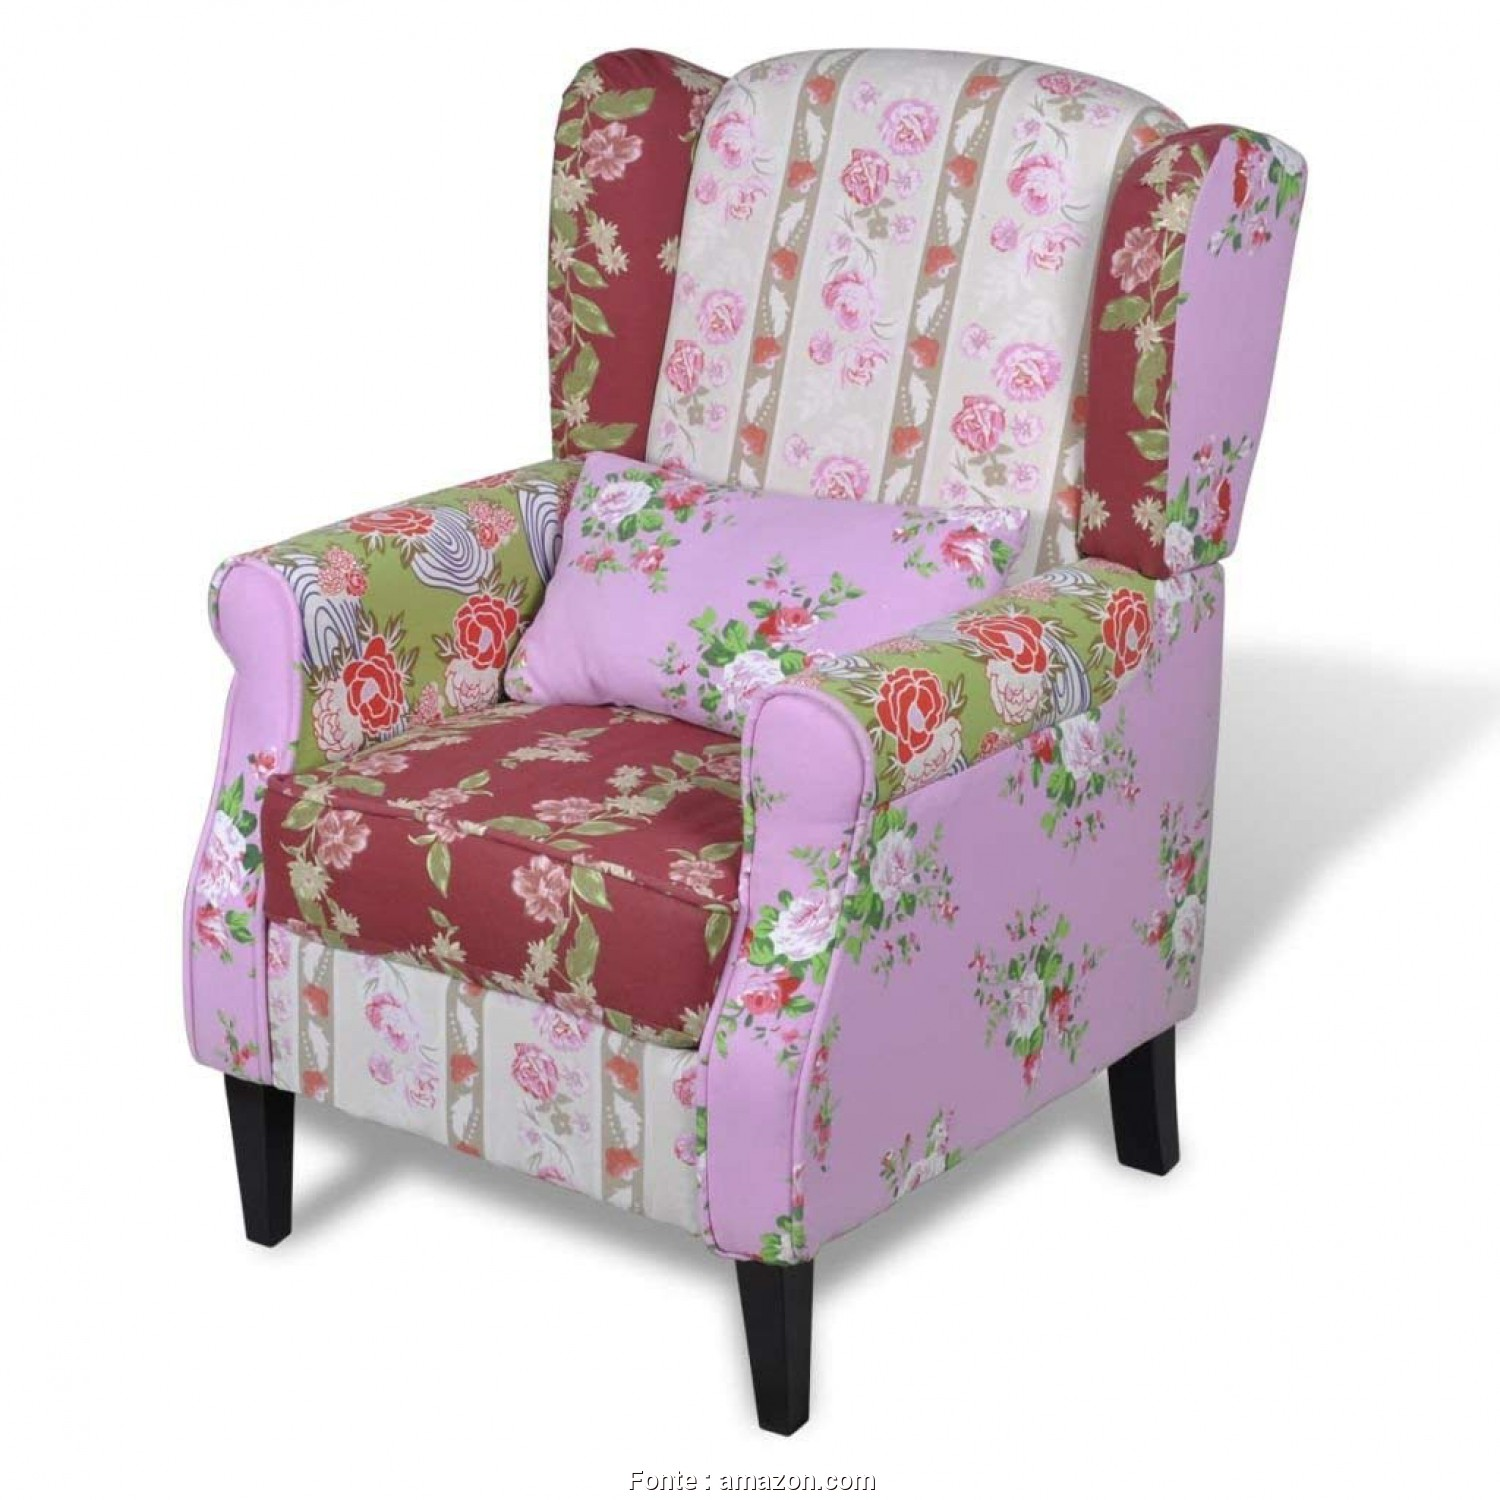 Poltrone Vintage Amazon, Modesto Amazon.Com: VidaXL Vintage Patchwork Wingback Armchair Accent Chair Fabric Upholstery Floral Design: Kitchen & Dining